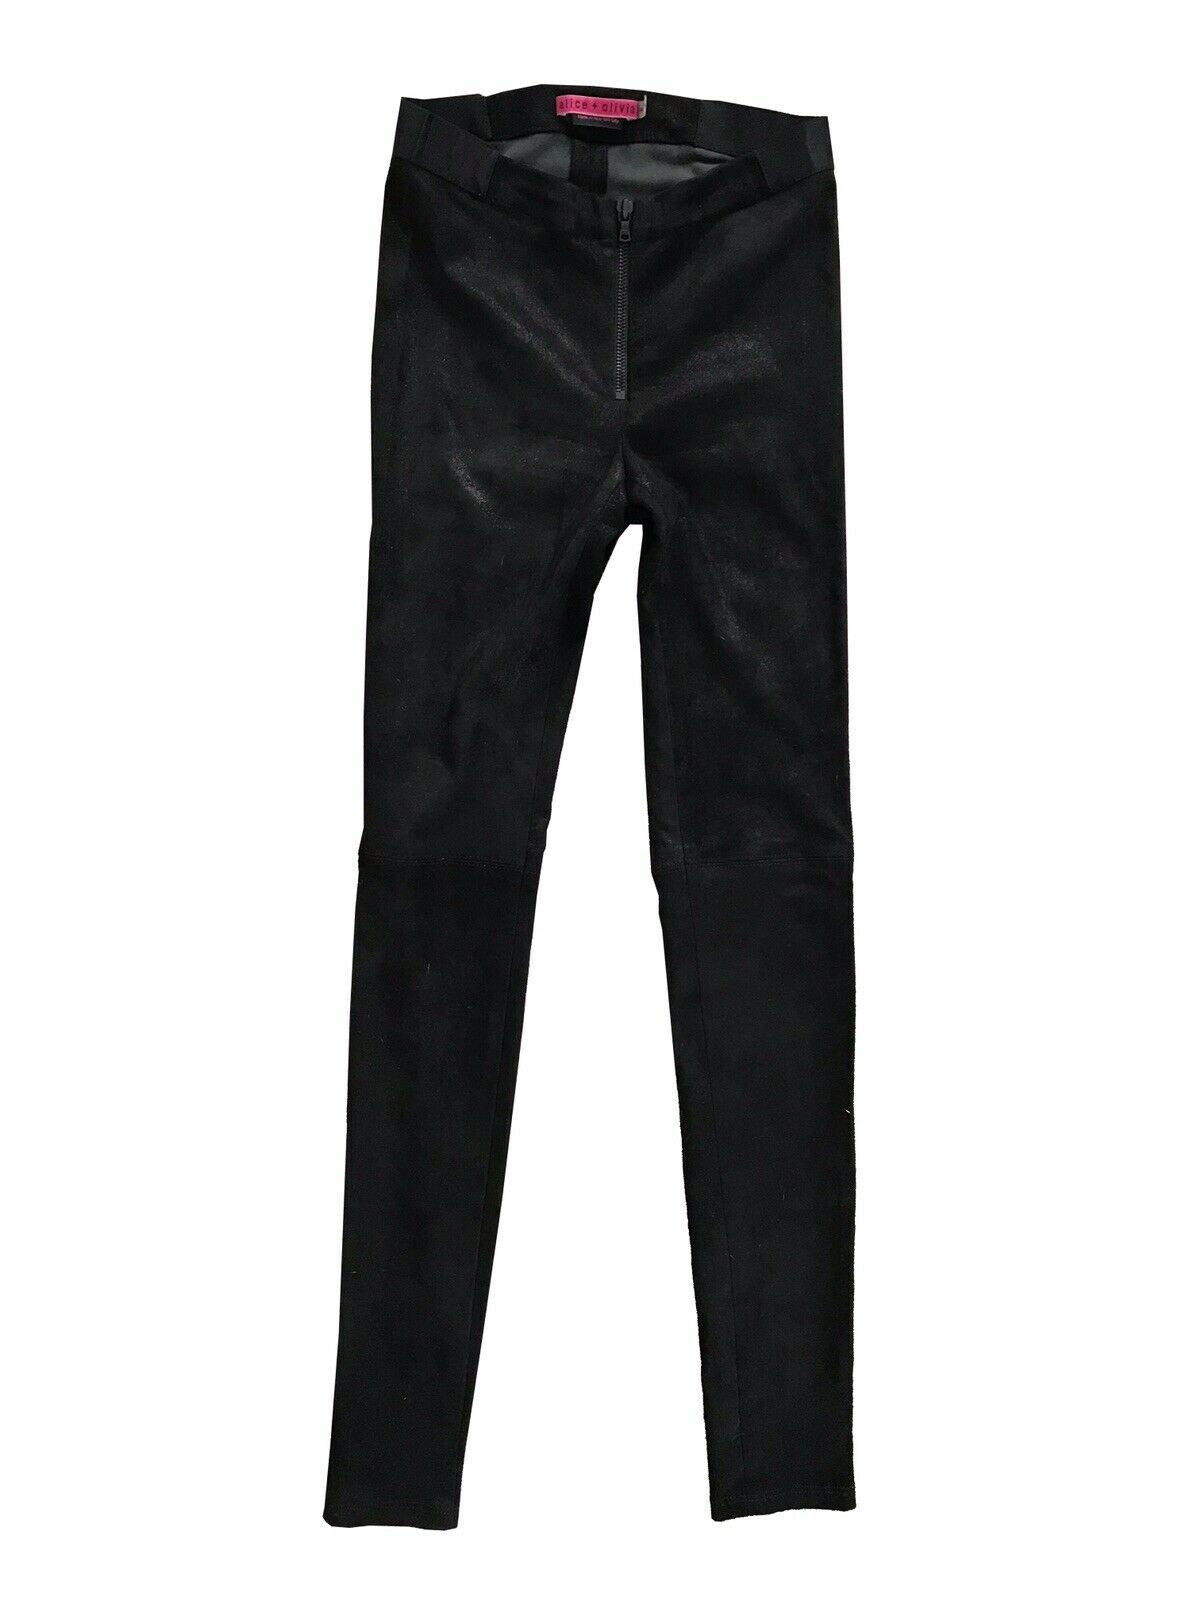 Alice olivia Leather Suede Stretch Leggining Pants 0, 24, 25